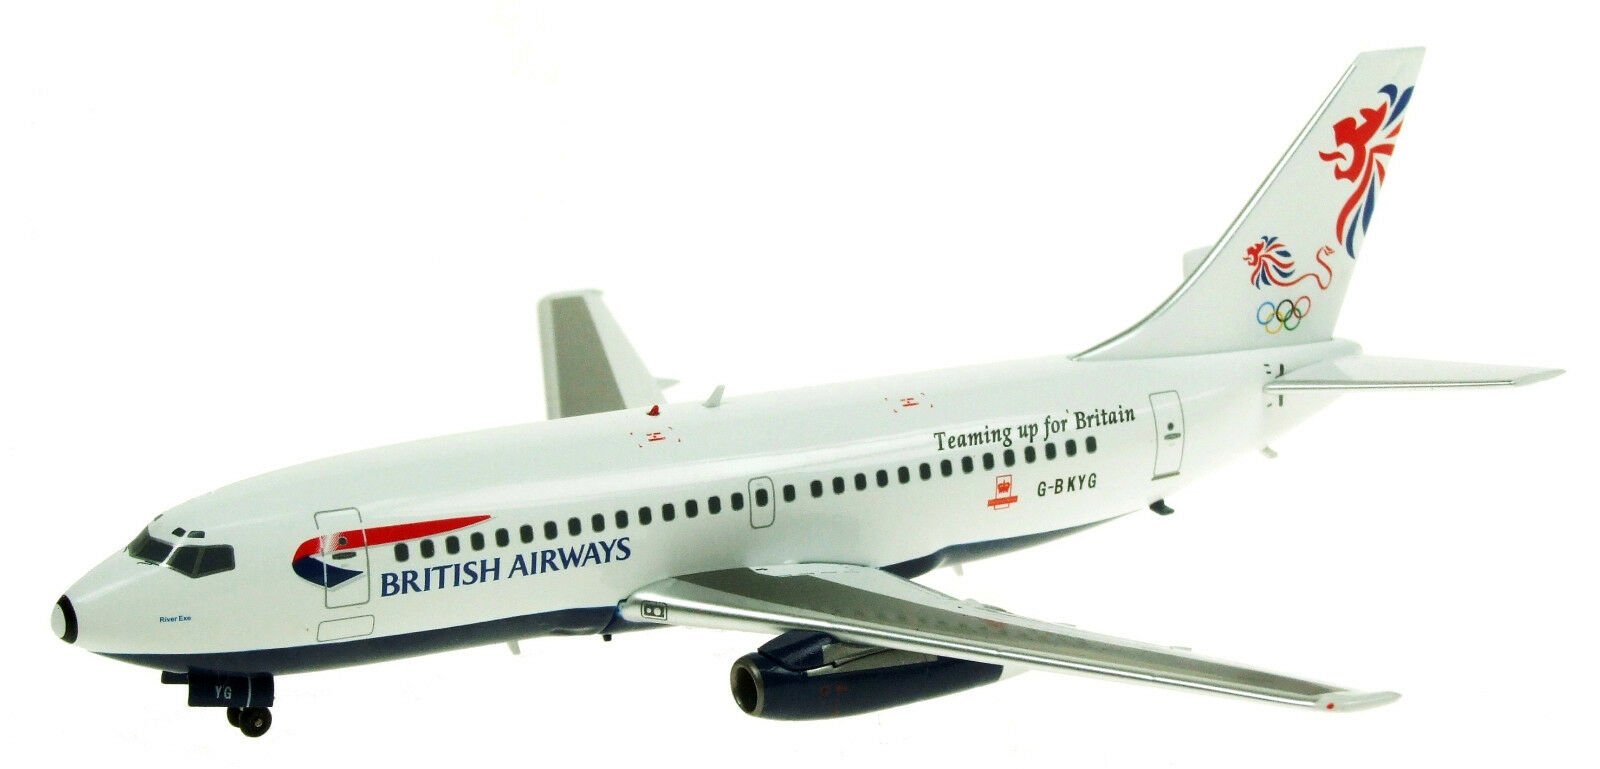 muy popular Inflight 200 IF7320212A 1 200 200 200 British Airways Teaming Up For Bretaña G-Bkyg  Descuento del 70% barato